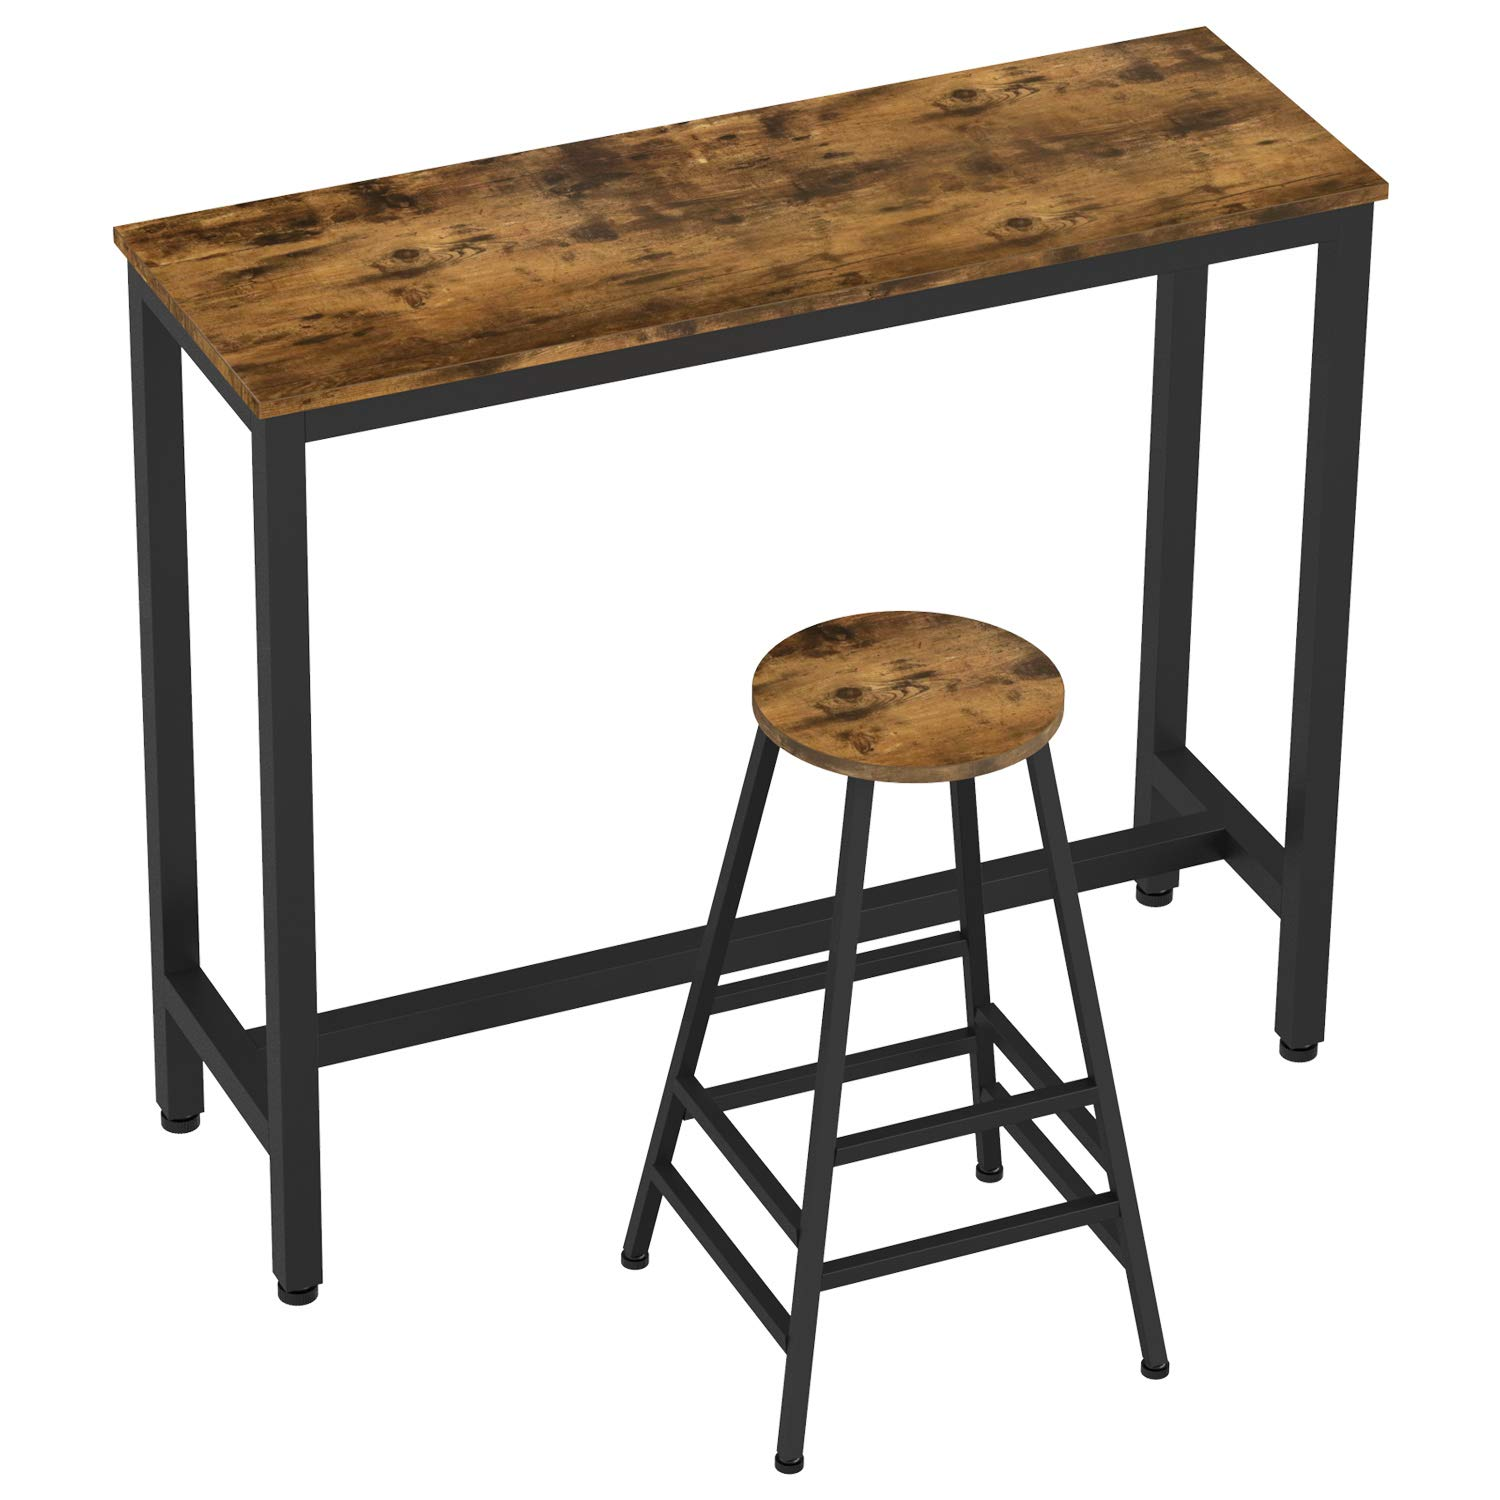 IRONCK 2-Piece Pub Bar Table Set, (47.2''L 15.7'' W 39.4'' H) Industrial High Top Table with Bar Stool Chair, MDF Board and Metal, Vintage Brown by IRONCK